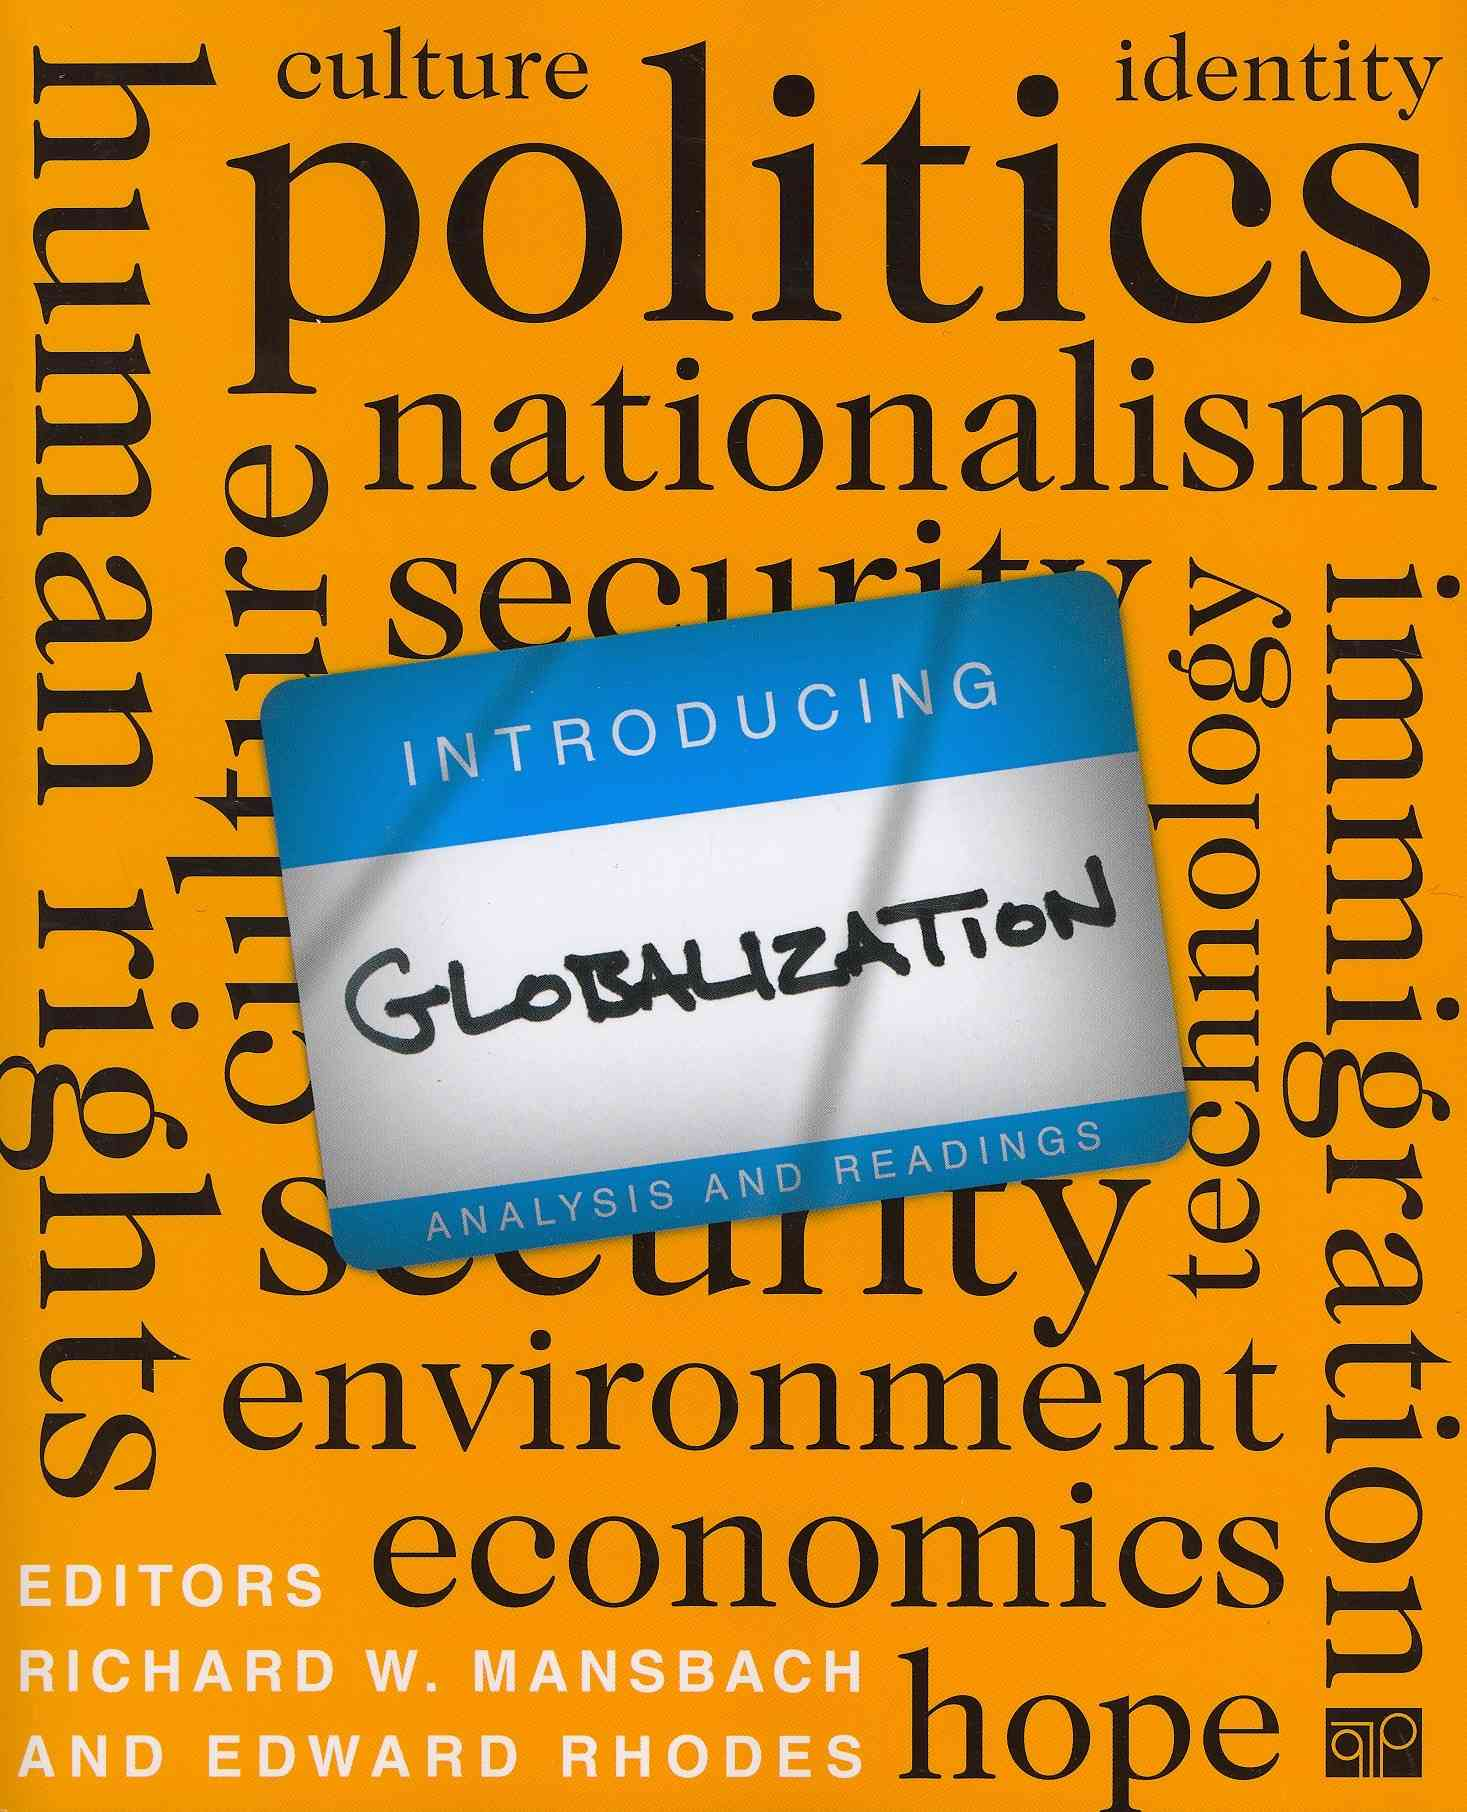 Introducing Globalizational Analysis and Readings By Manscach, Richard W./ Rhodes, Edward